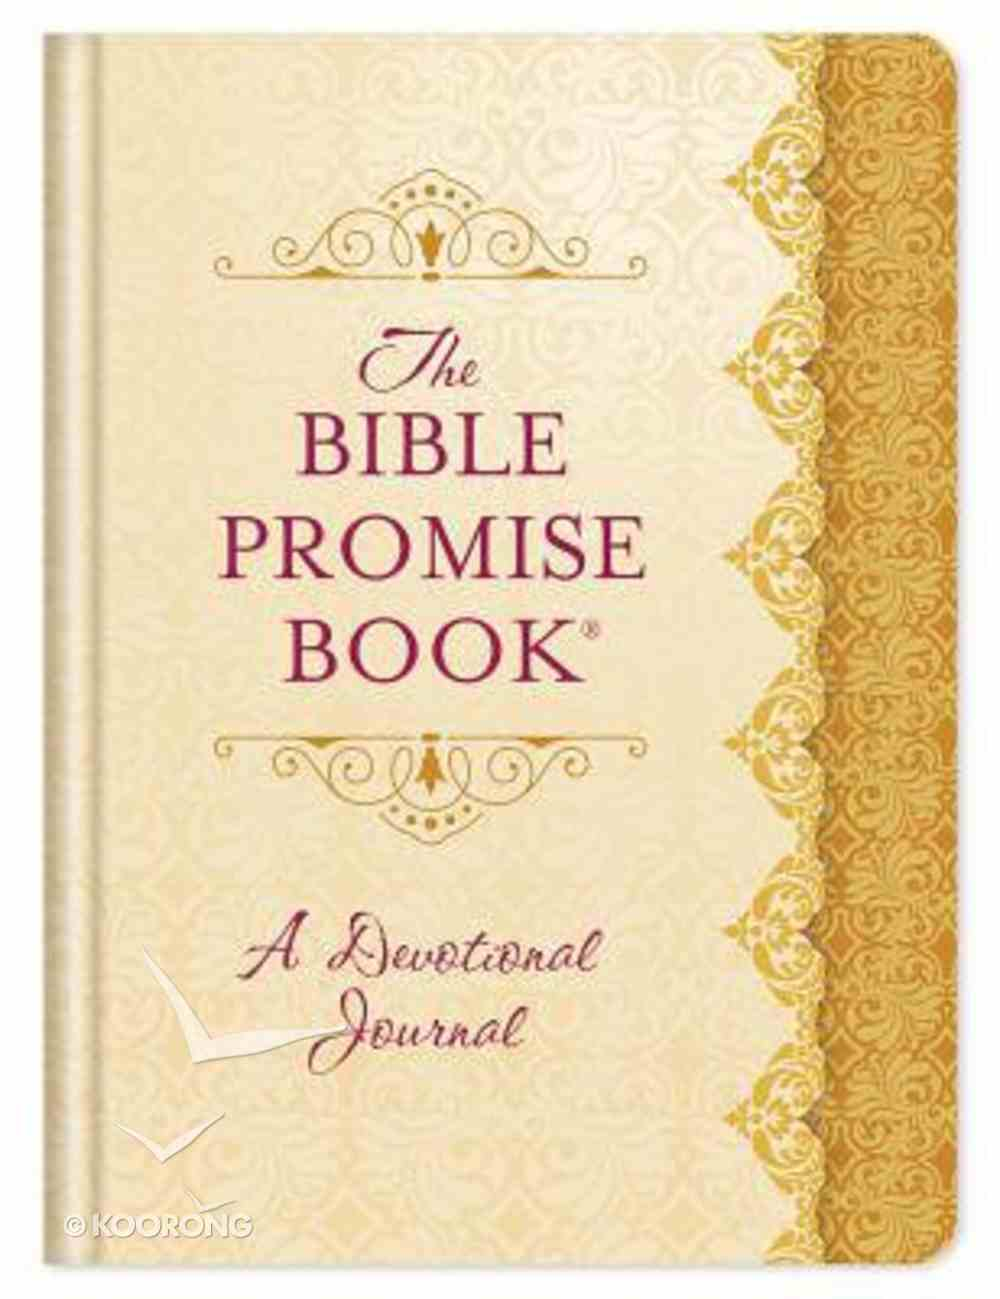 Bible Promise Book Devotional Journal, The: 365 Days of Scriptural Encouragement (365 Daily Devotions Series) Hardback